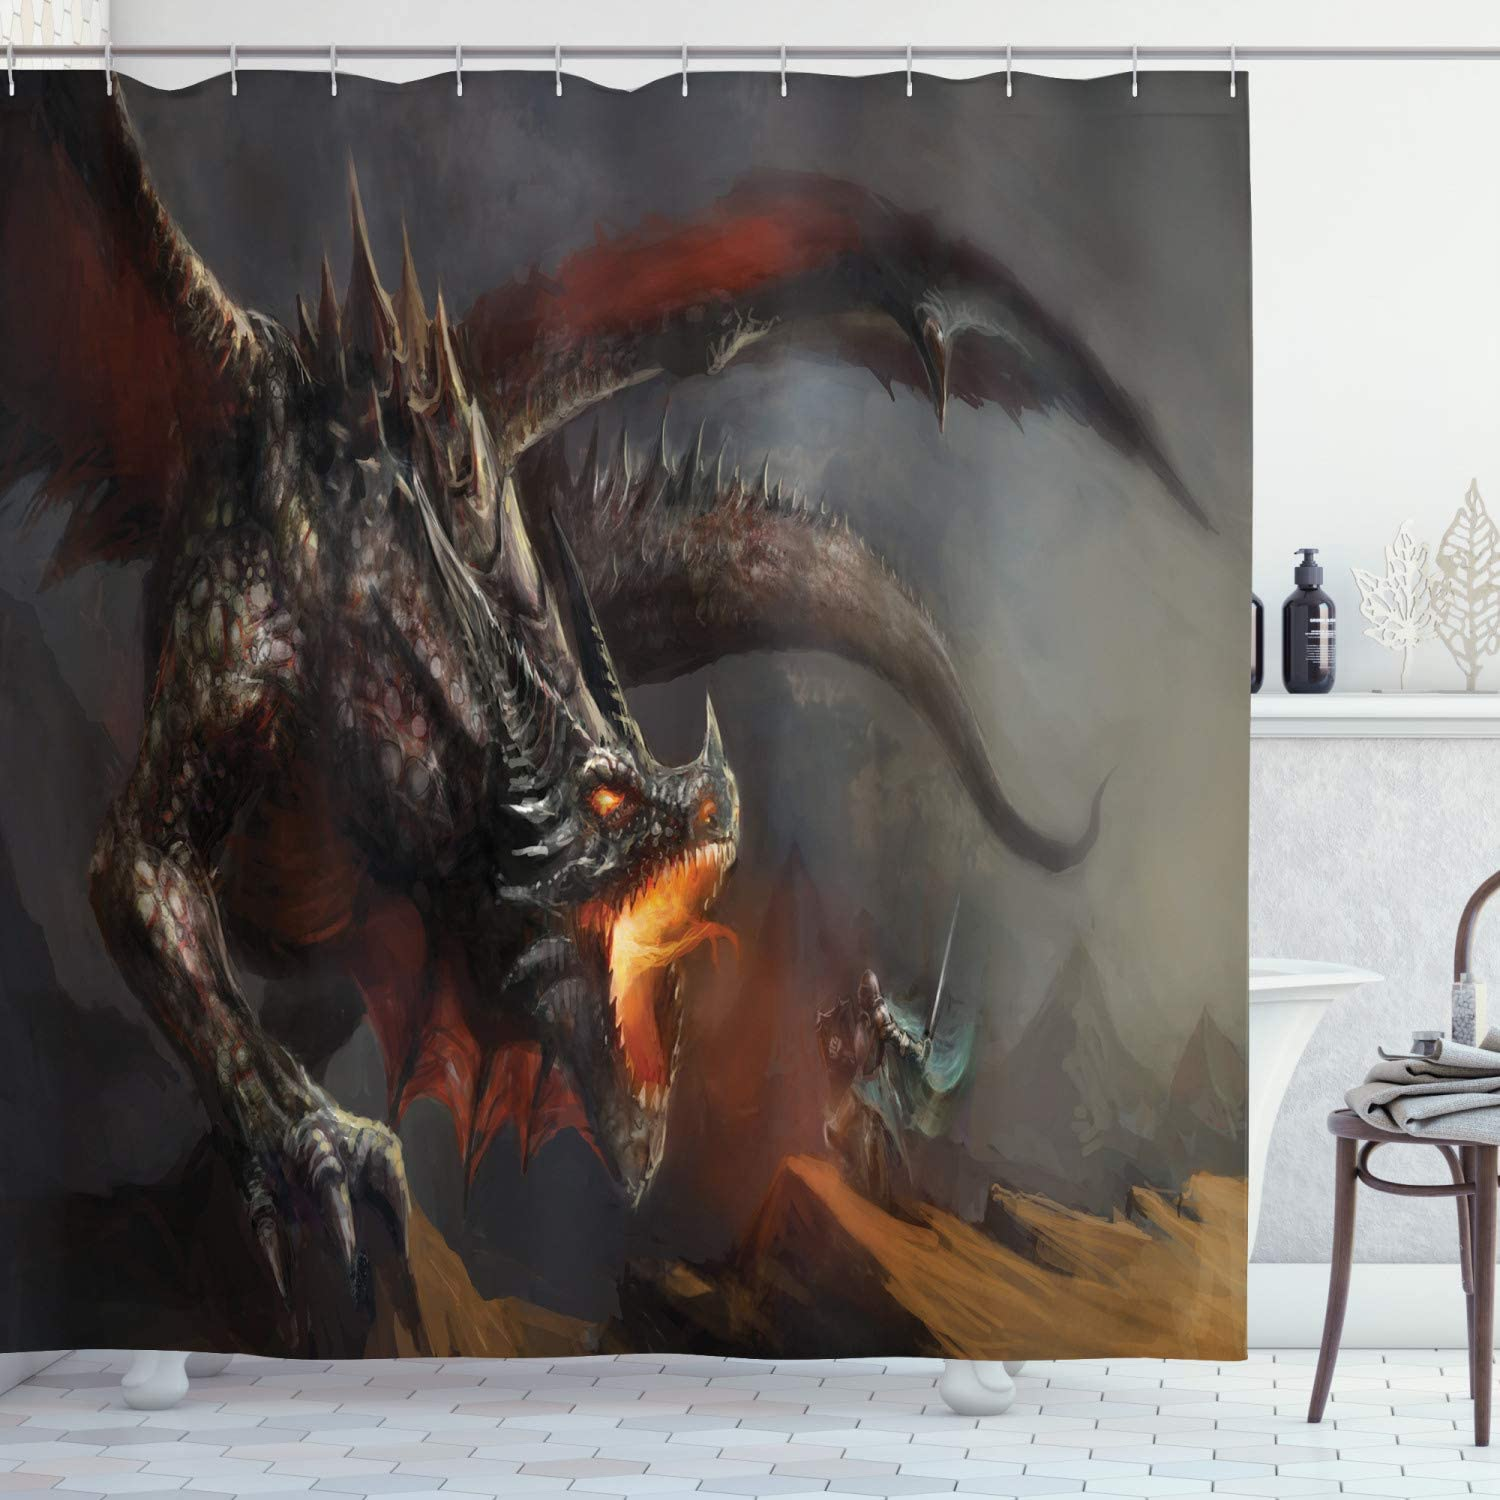 Ambesonne Medieval Shower Curtain, Fantasy Scene Fearless Knight with Dragon Art Antique Fantasy, Cloth Fabric Bathroom Decor Set with Hooks, 75